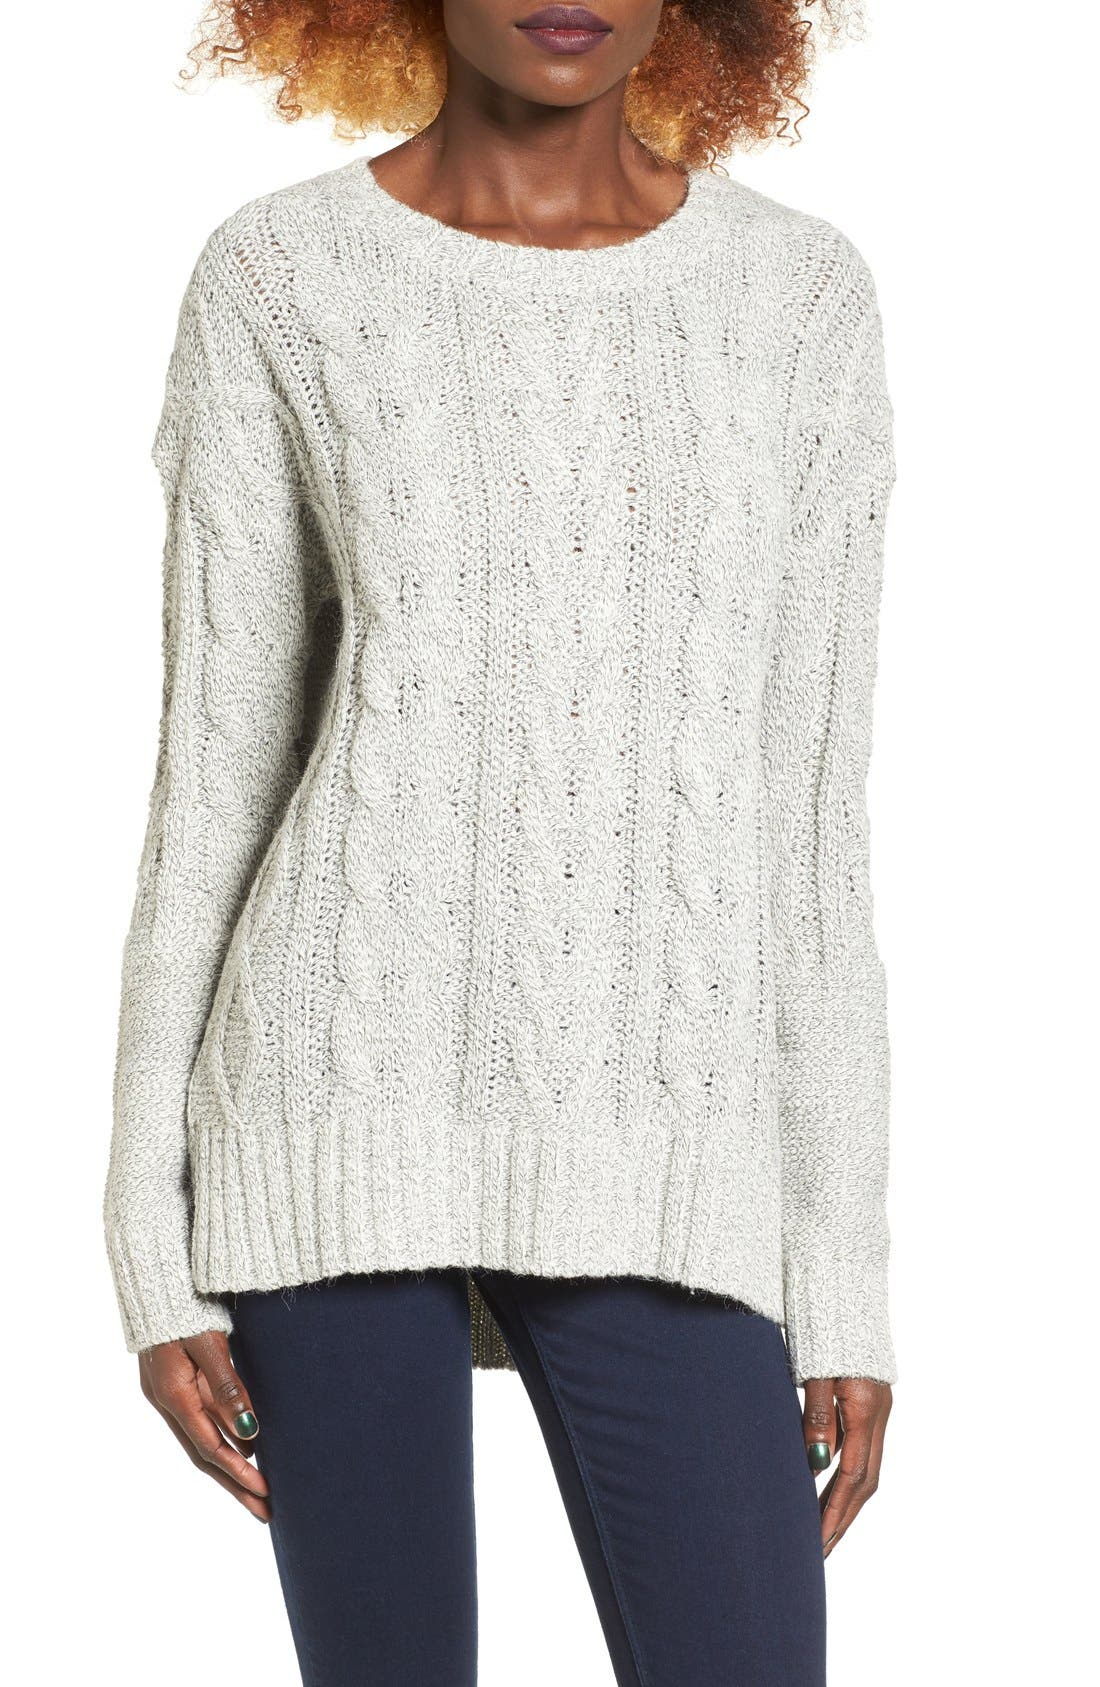 Alternate Image 1 Selected - Love by Design Marled Cable Knit Pullover